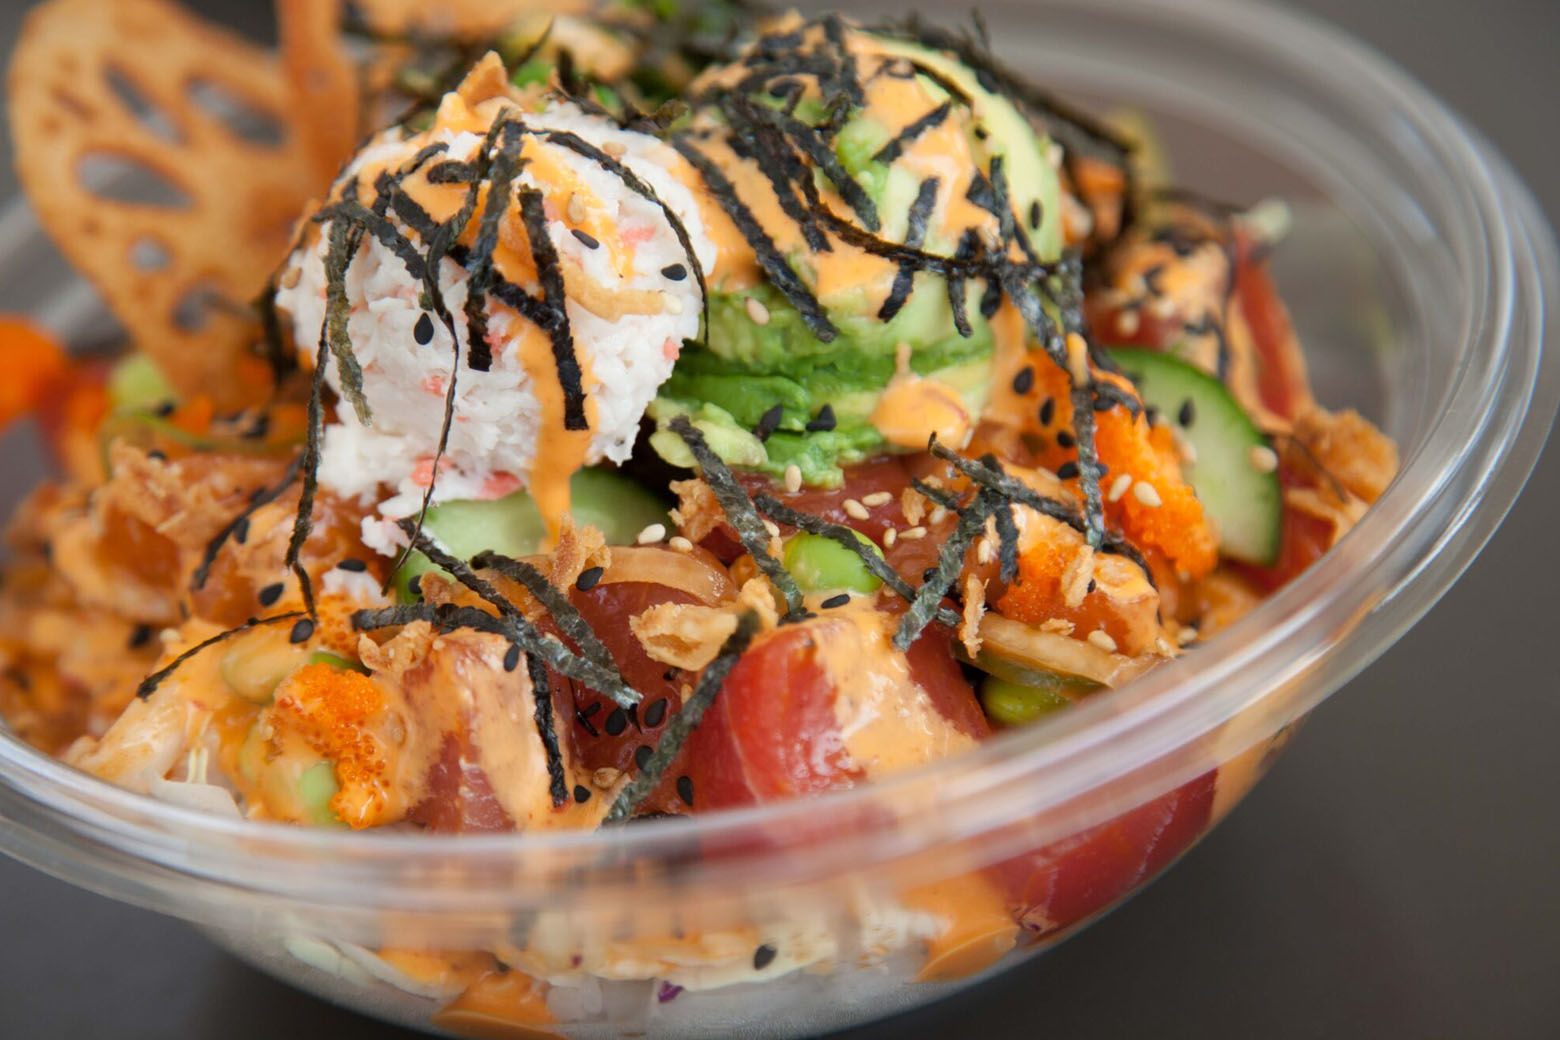 Poke bowls comes with different combinations of mix-ins, toppings, sauces and proteins. (Courtesy Pokebowl)